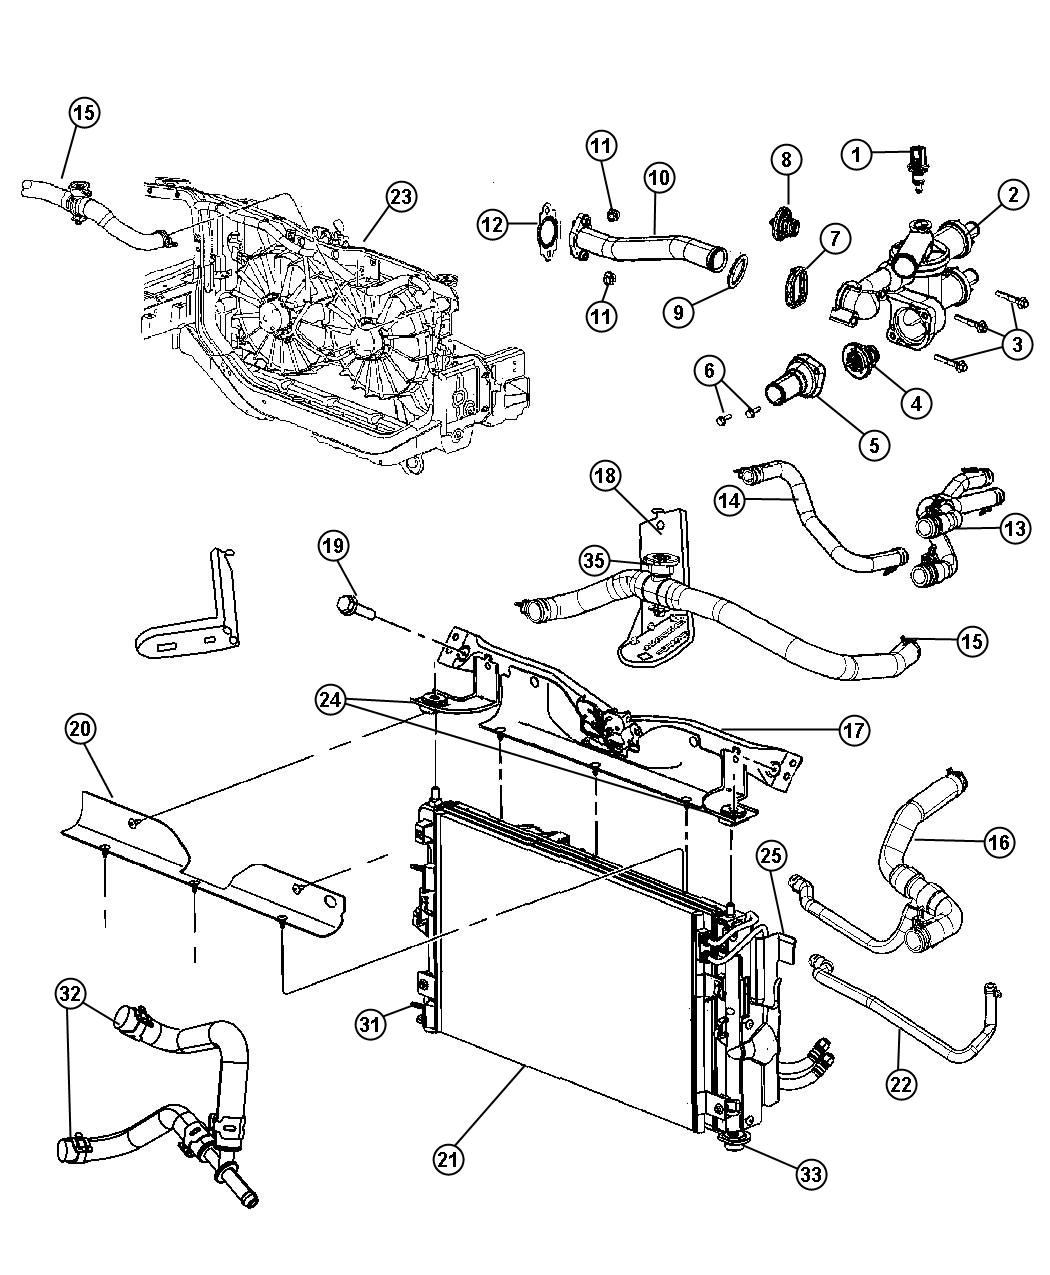 Jeep Patriot 2 4l Engine Diagram. Jeep. Auto Wiring Diagram